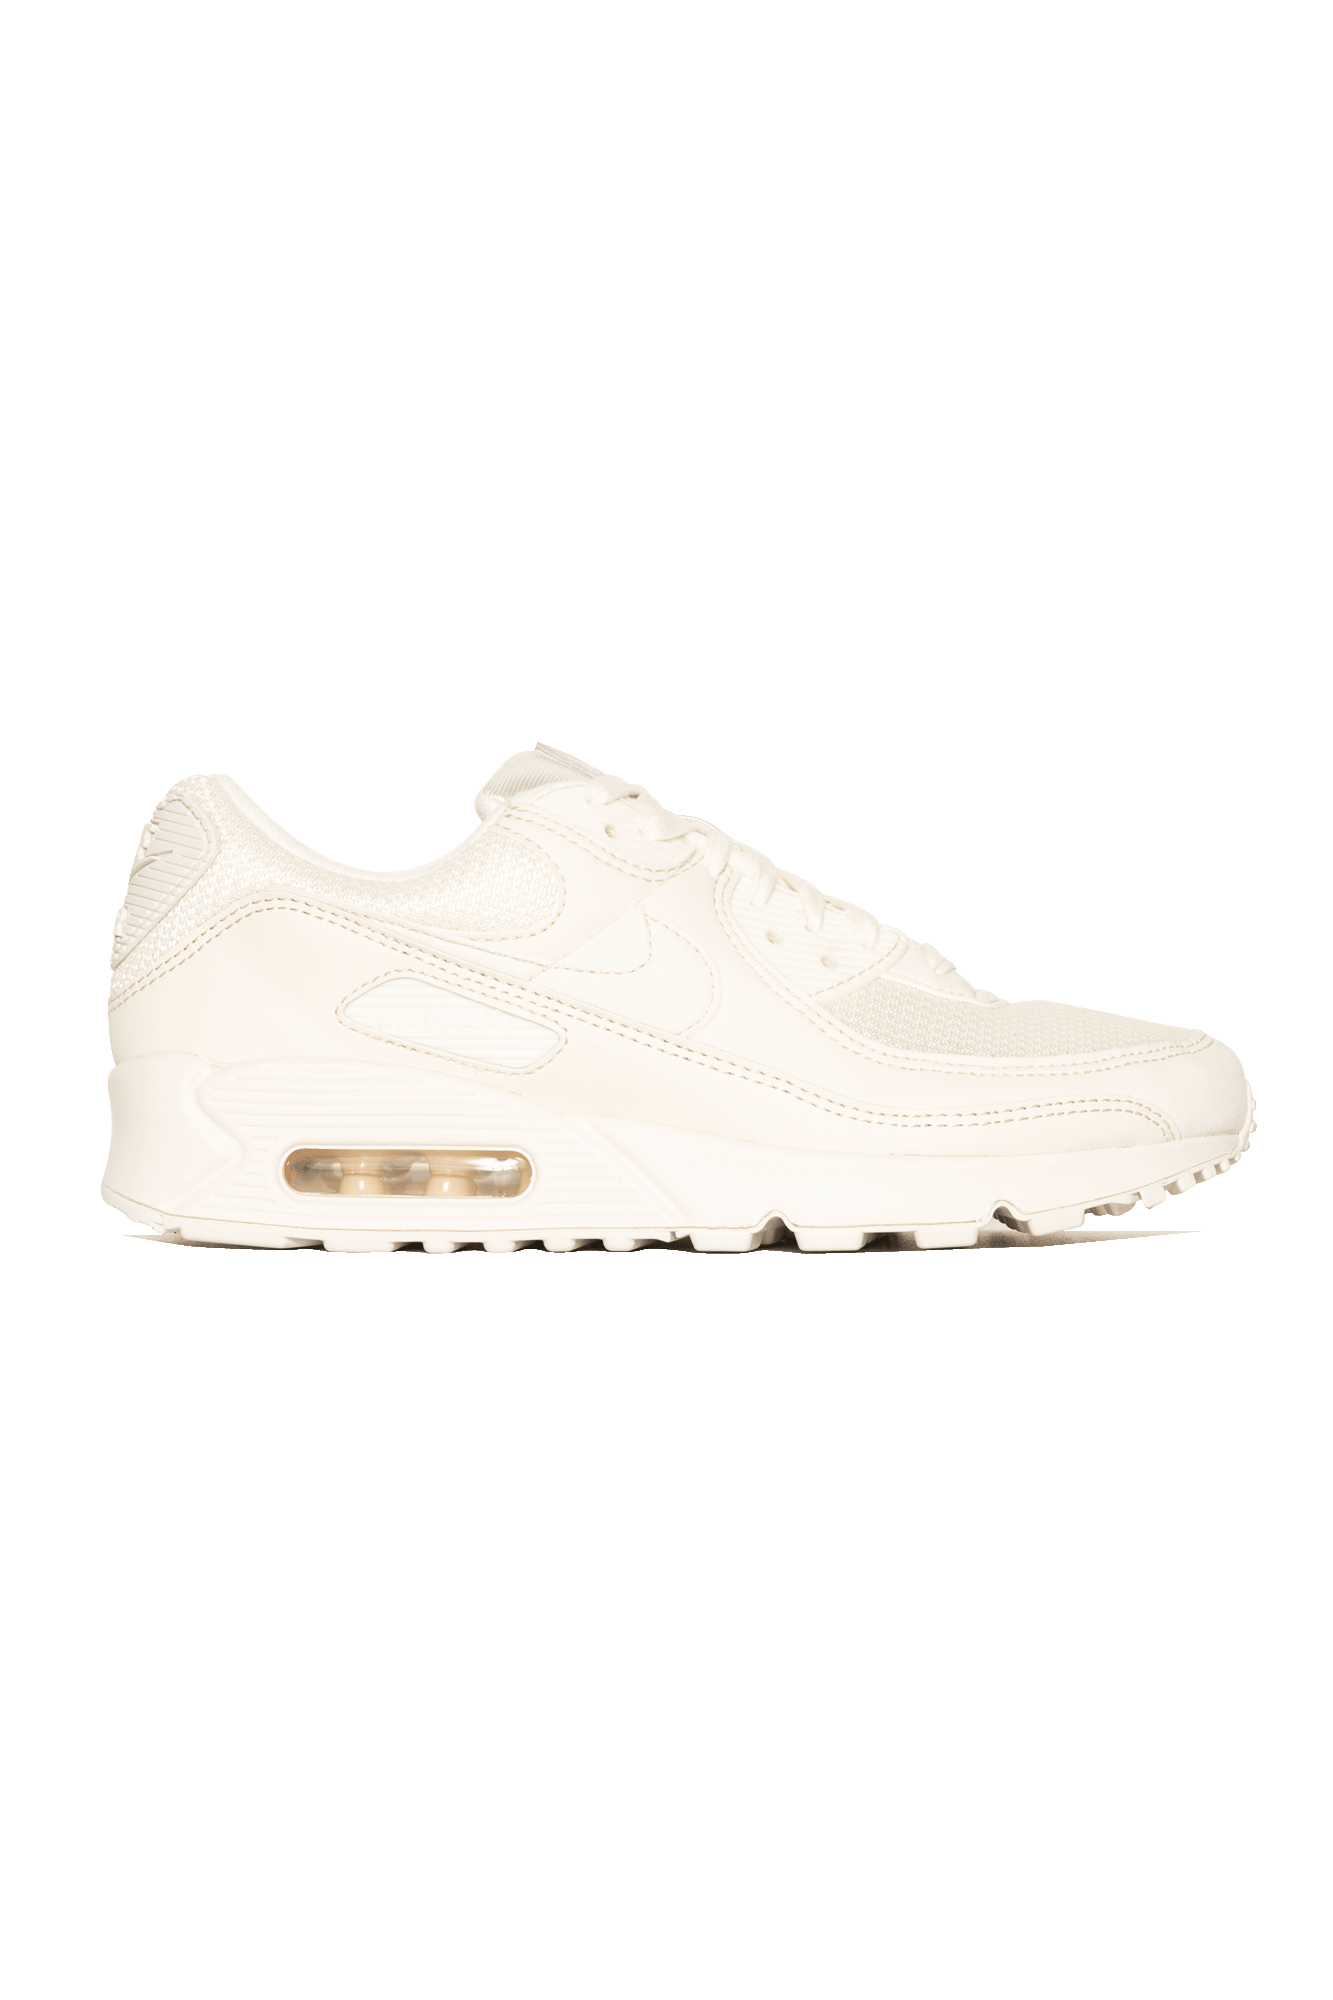 Nike Sneakers Air Max 90 NRG White CT2007-#000#100#4 - One Block Down